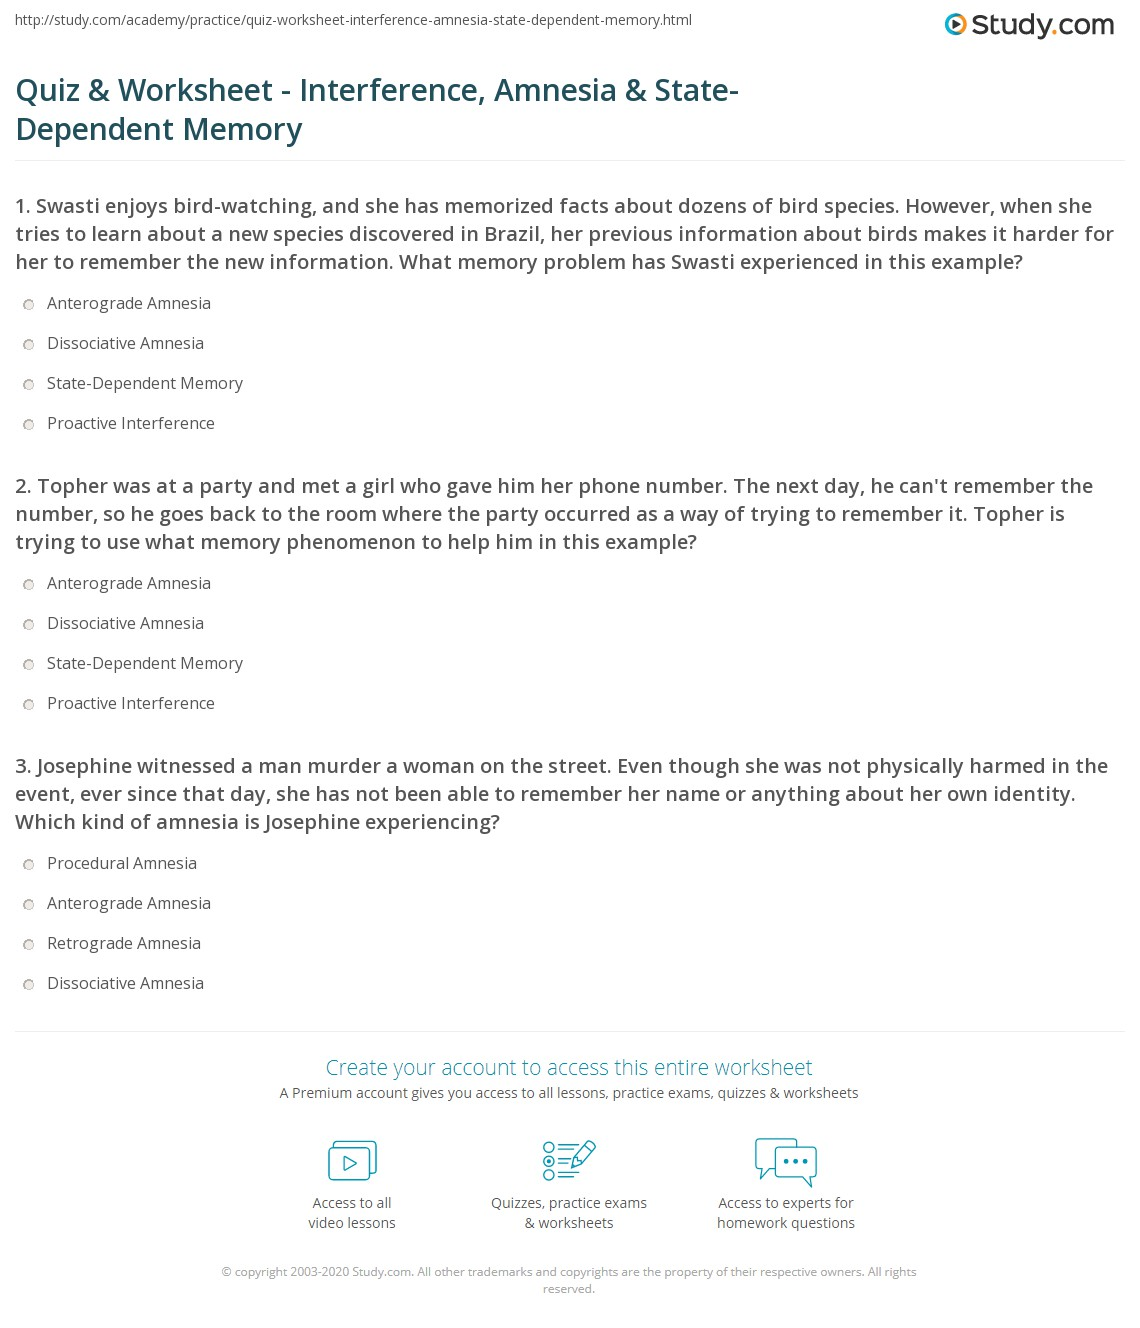 Quiz Worksheet Interference Amnesia State Dependent Memory